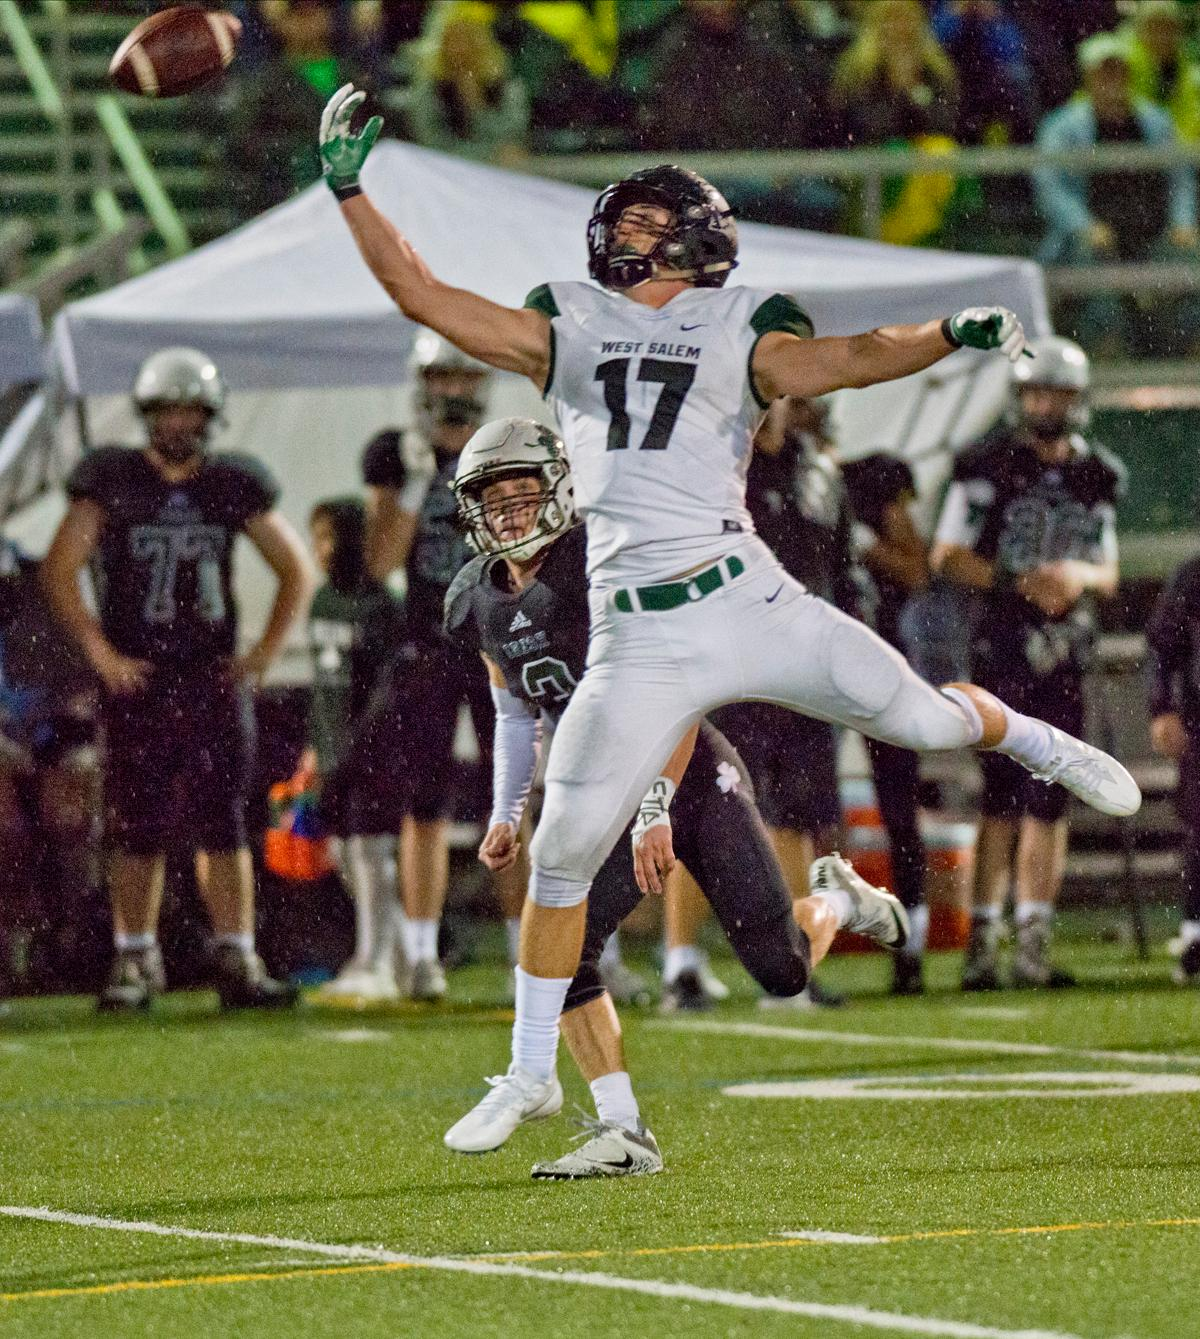 West Salem Titans wide receiver Micah Pugh (#17) can't bring in a long pass. On a rainy Monday evening Sheldon defeated West Salem 41-7. The game had been postponed from Friday due to unhealthy levels of smoke in the atmosphere due to nearby forest fires. Photo by Dan Morrison, Oregon News Lab